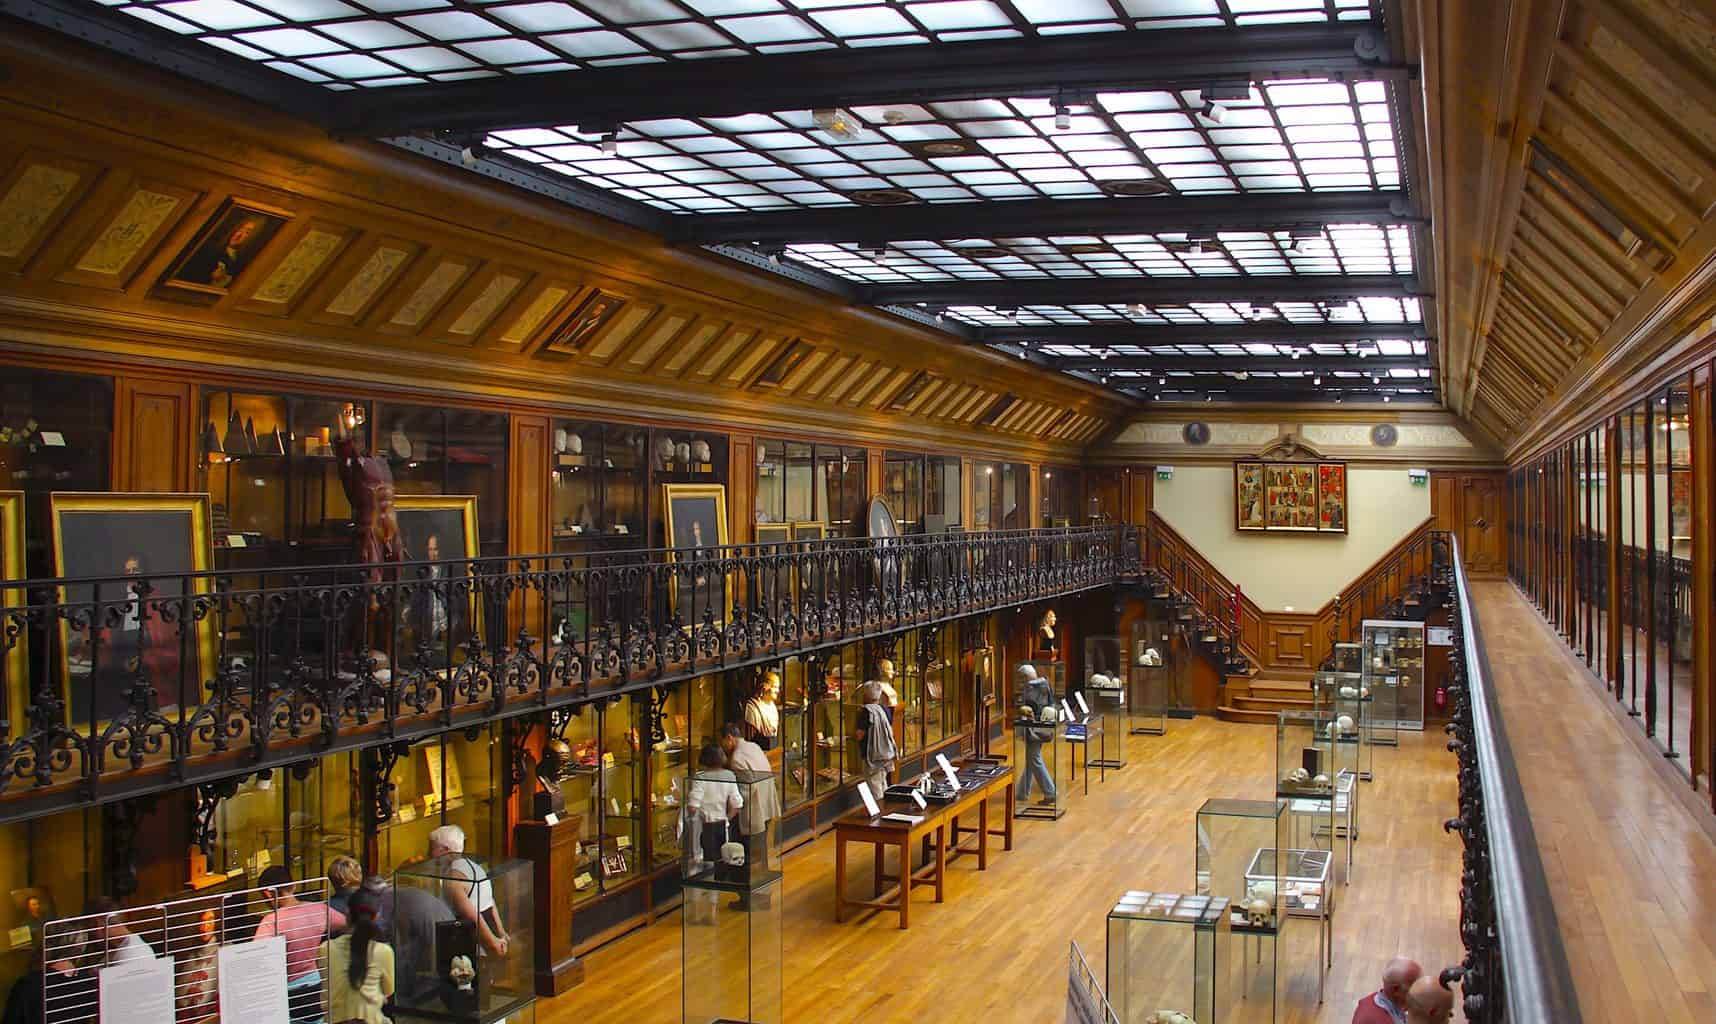 The fascinating interior of Paris' Museum of the History of Medicine (image sourced from Flickr.com).